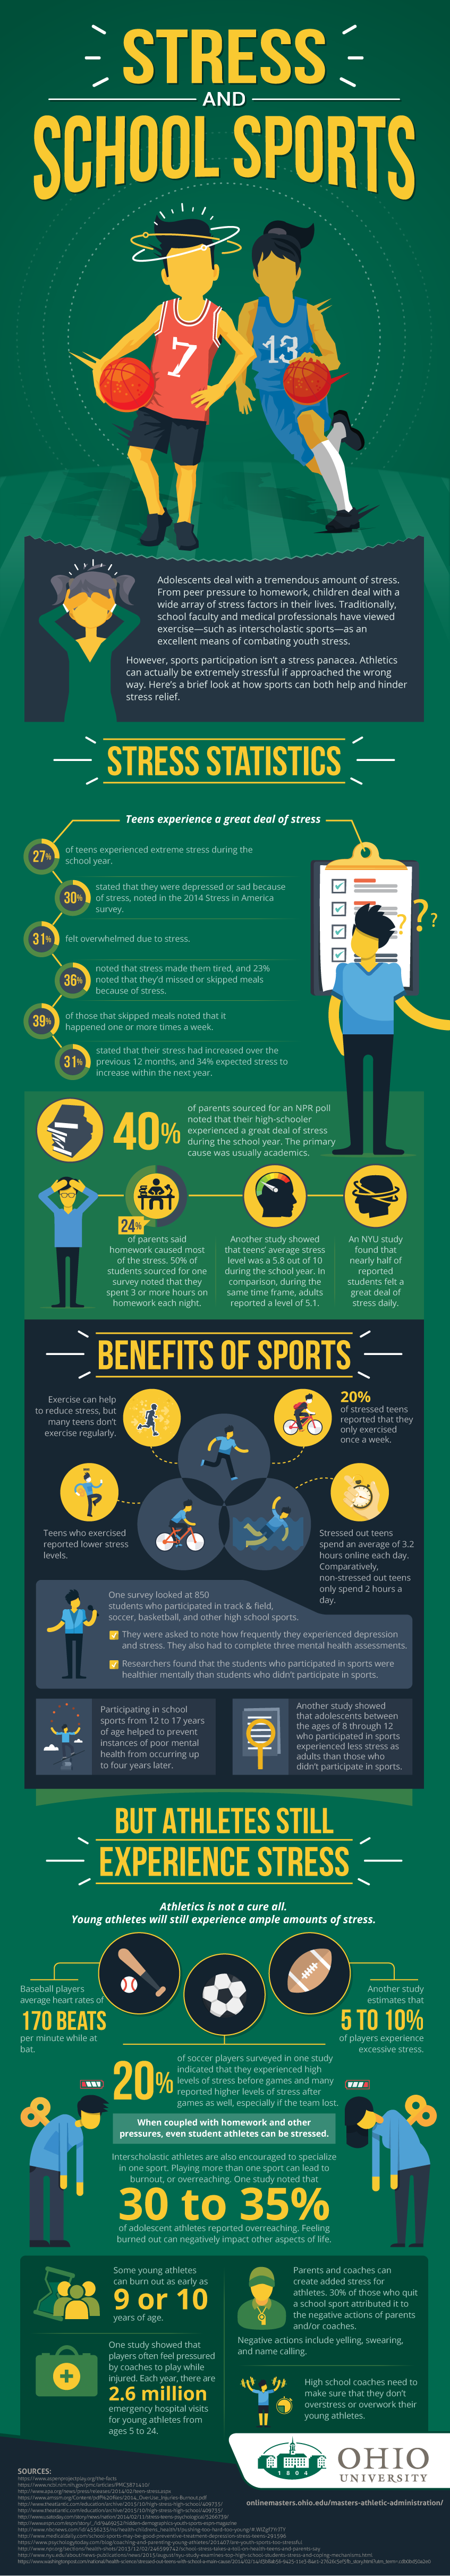 How School Sports is Creating Stress and Negativity - Infographic